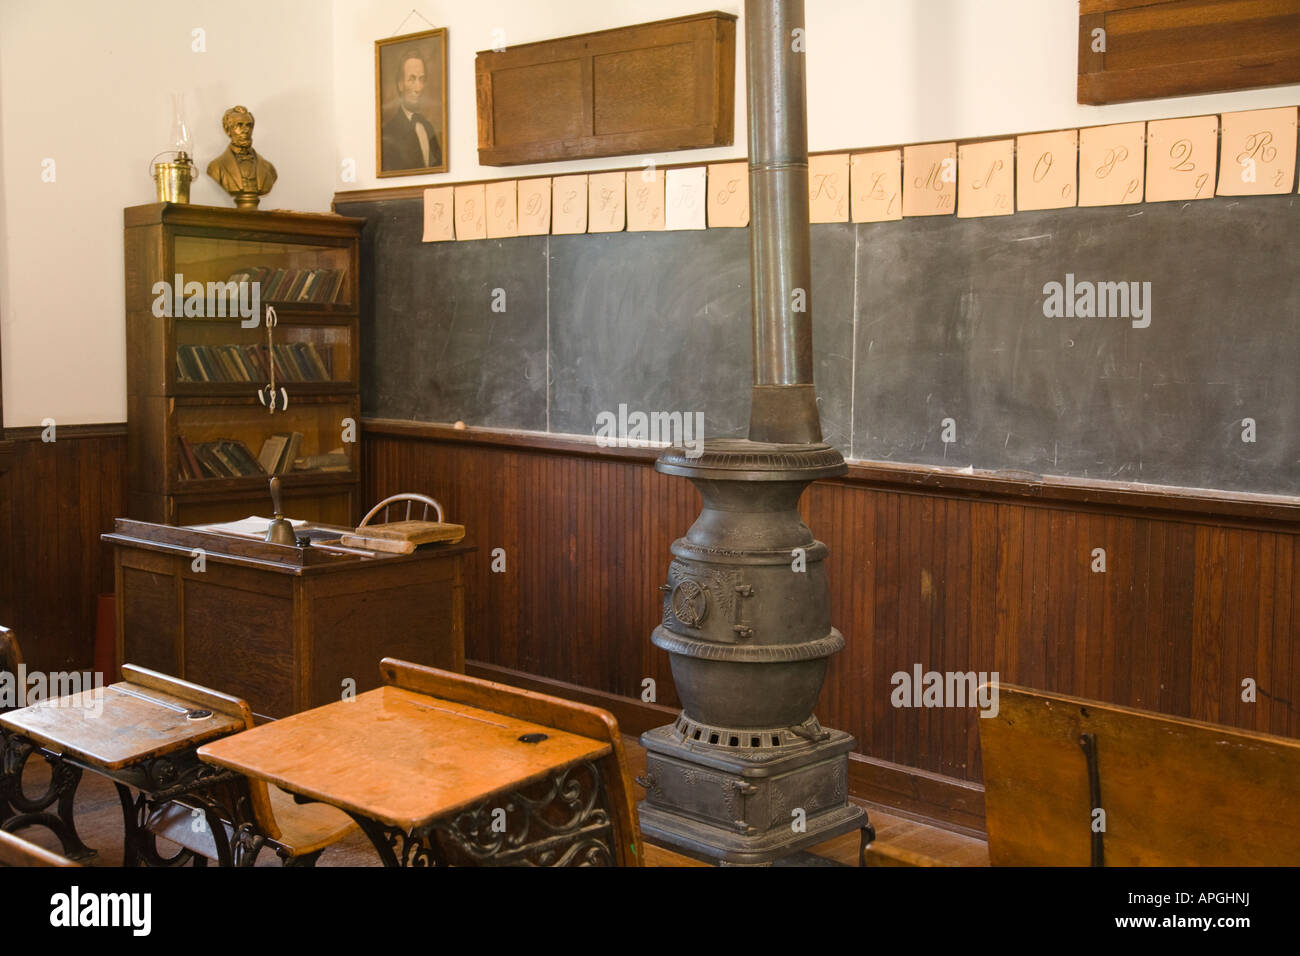 ILLINOIS Rockford Wooden desks with inkwell for students old fashioned schoolhouse pot bellied stove teachers desk - Stock Image